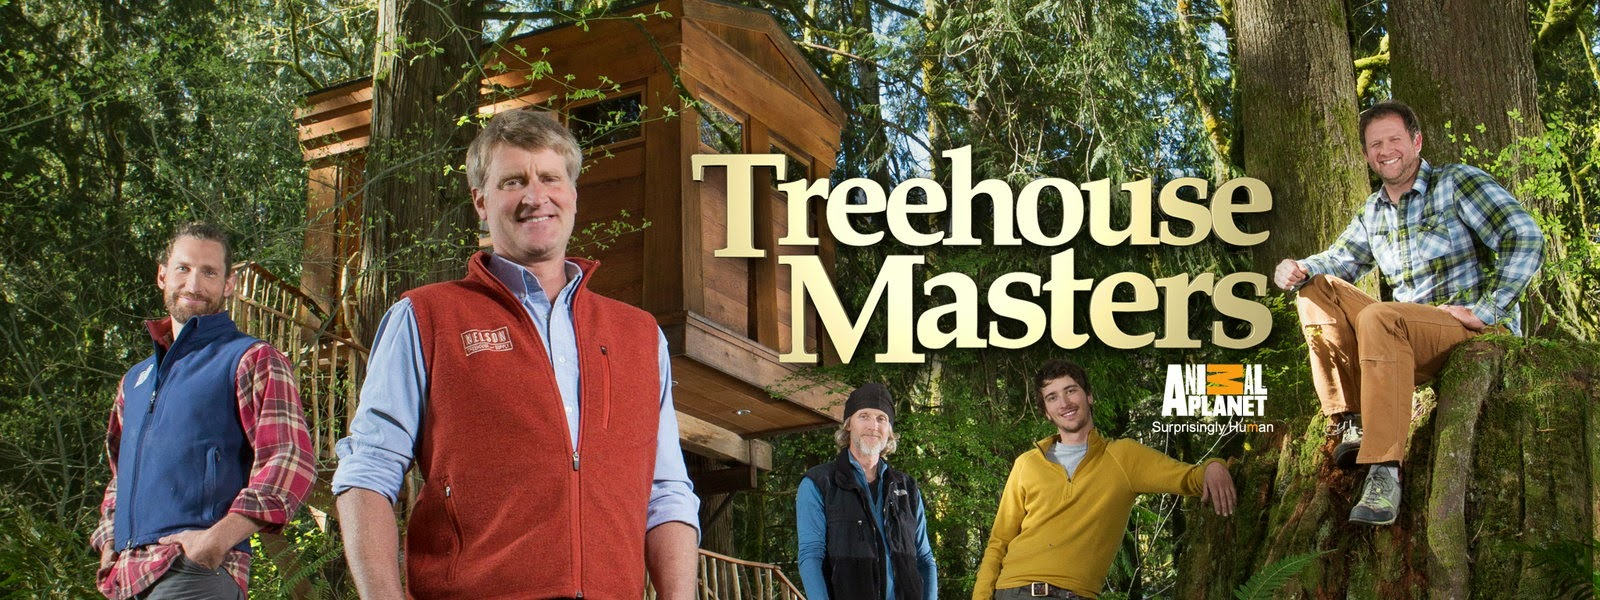 treehouse masters alex meyer animal house and his crew seem equally as wonderful currently have celeb crush on alex meyer the gorgeous carpenter the season of plum and cobblestone treehouse masters